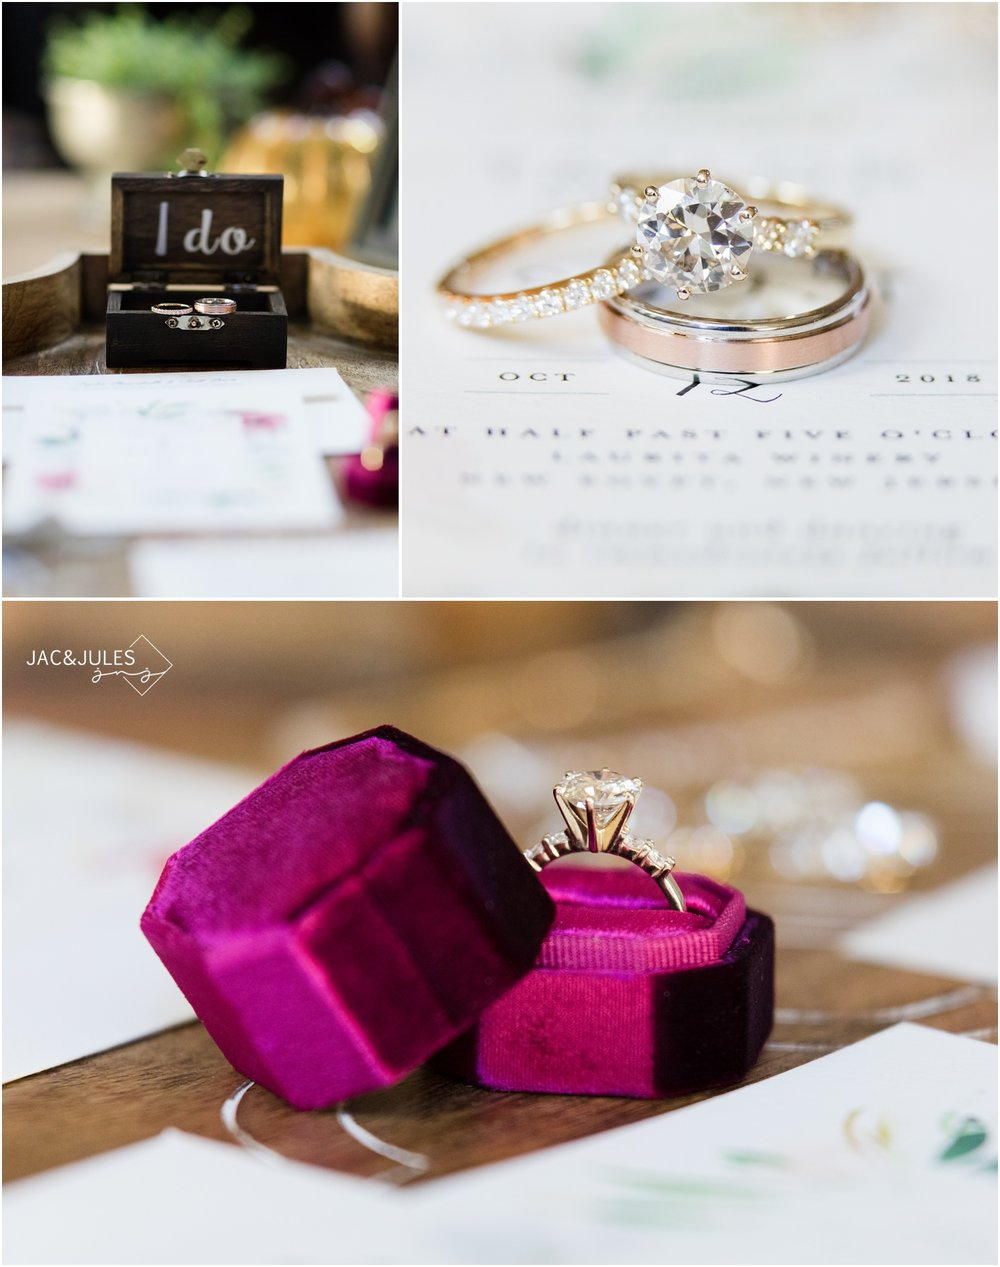 Engagement ring, wedding bands, invitations and Jewelry for a wedding at Laurita Winery.